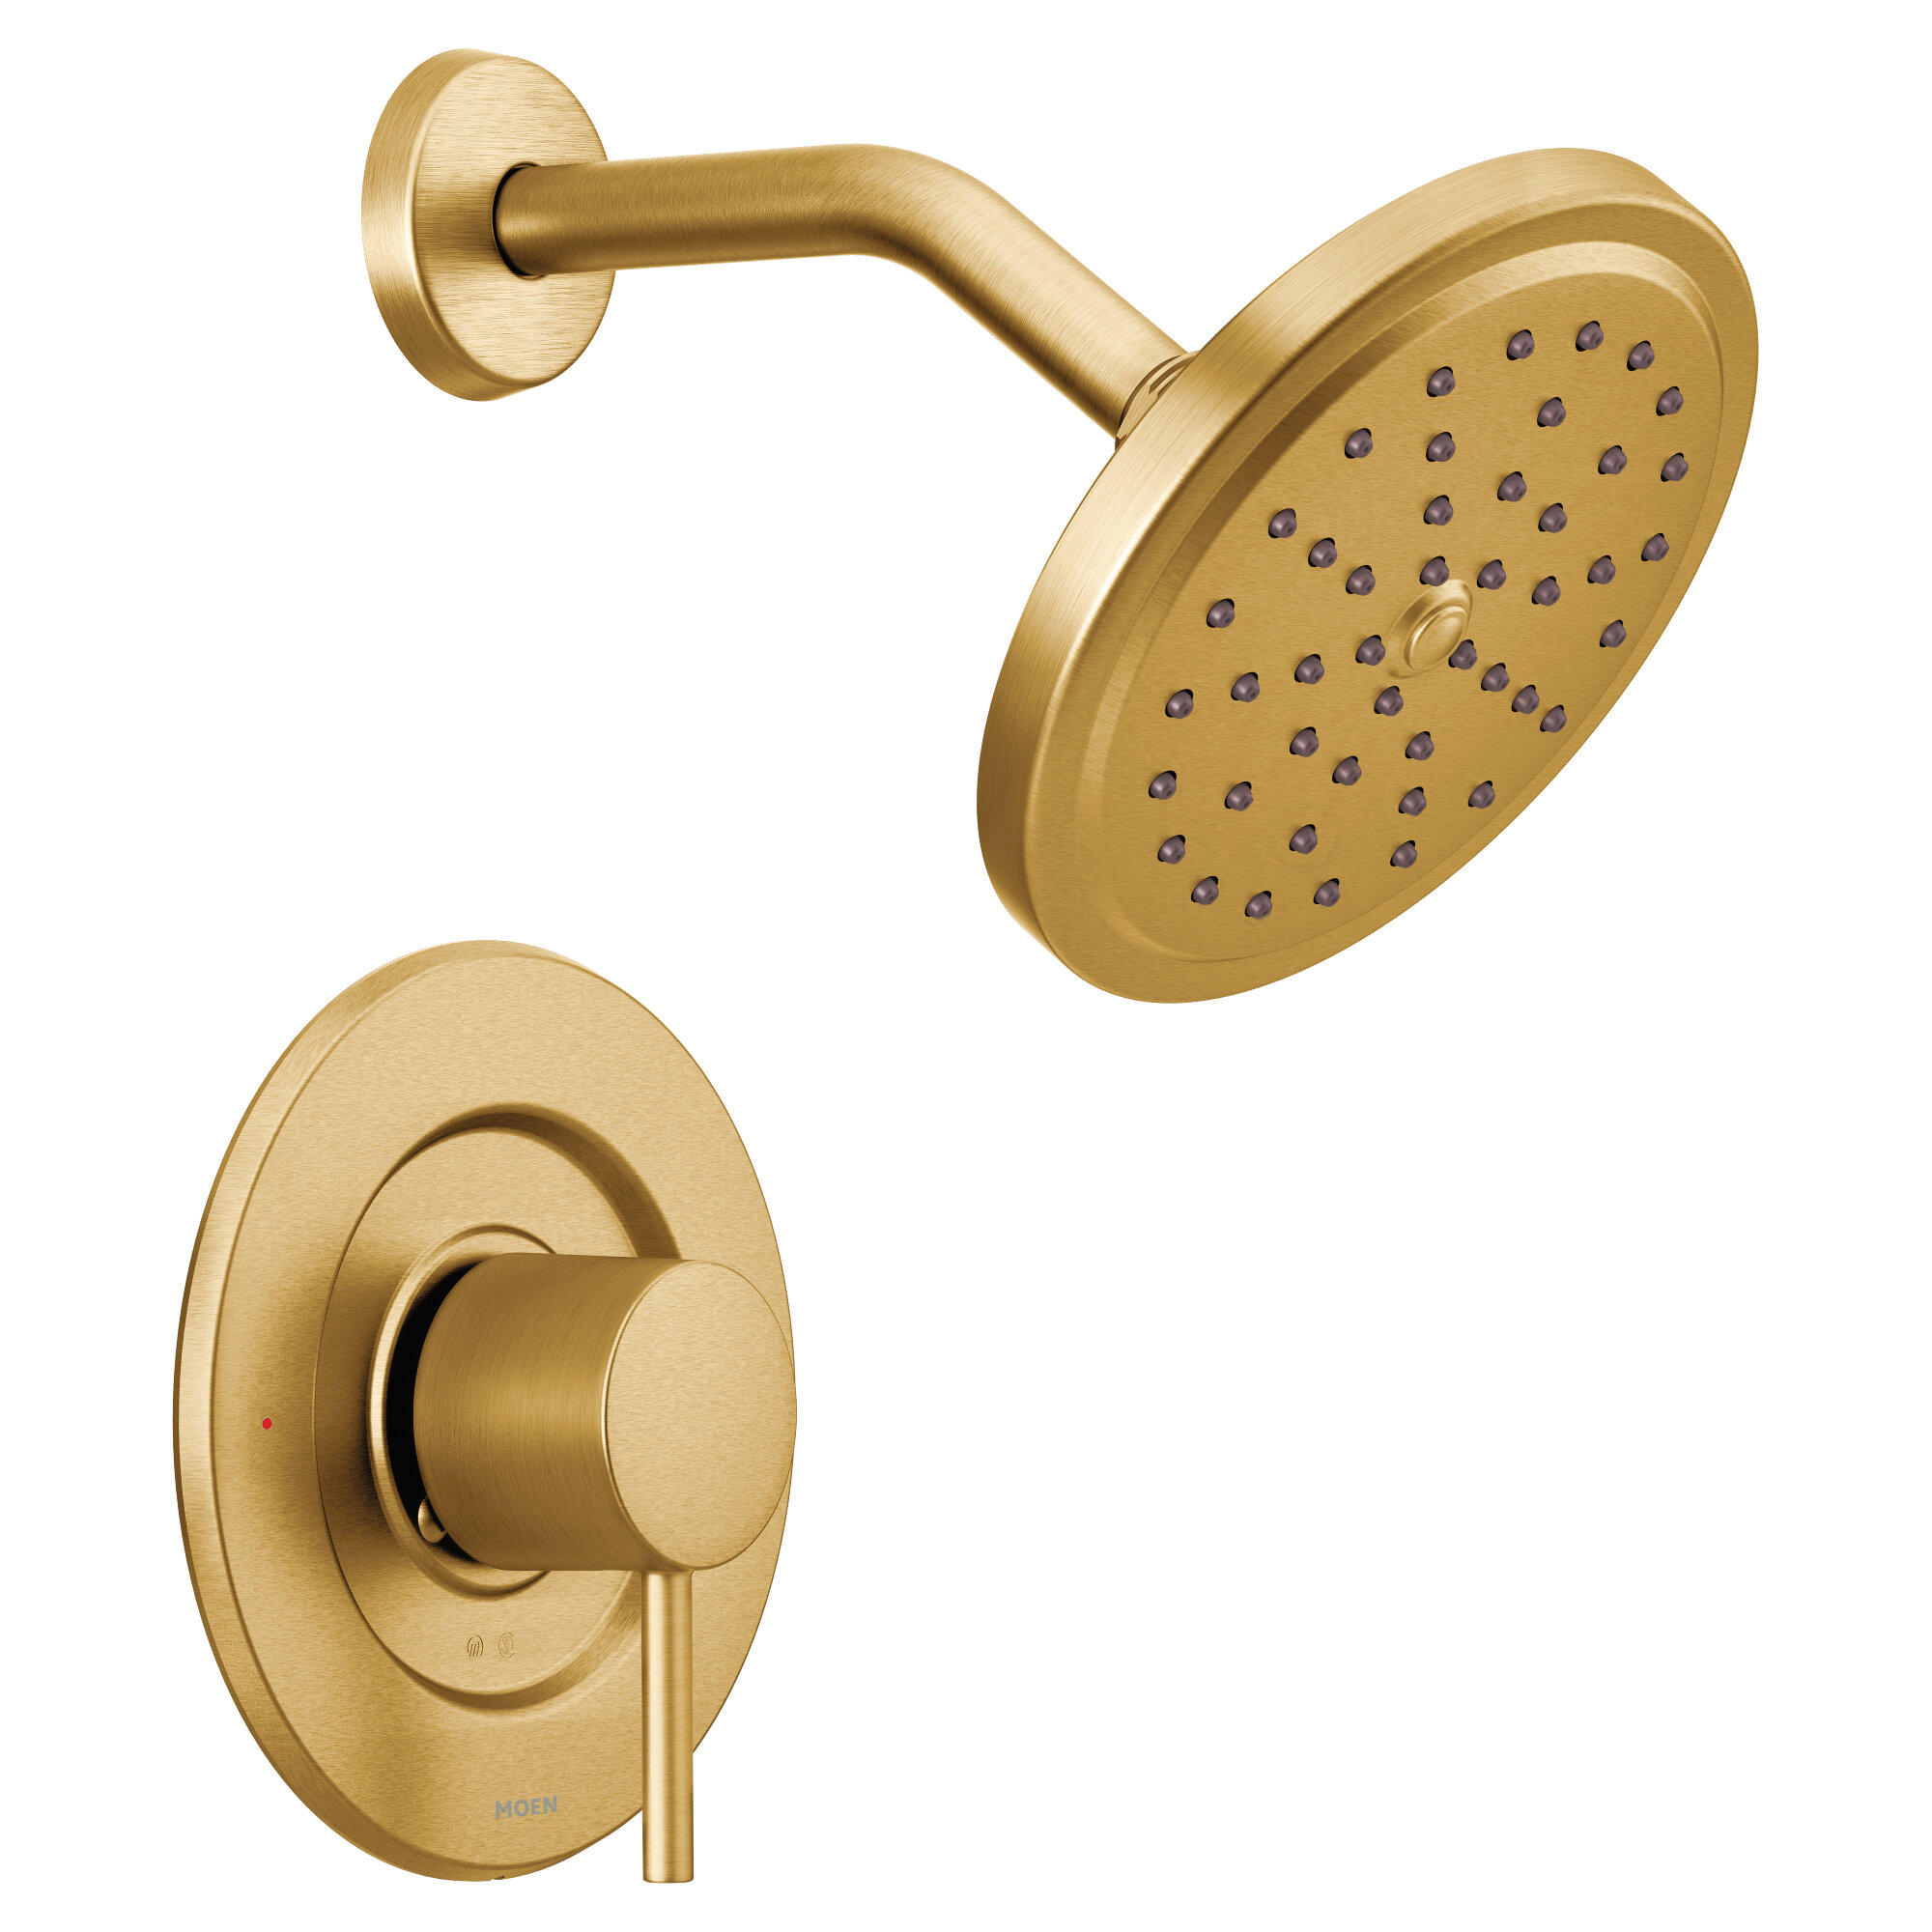 Align Volume Control Shower Faucet With Moentrol